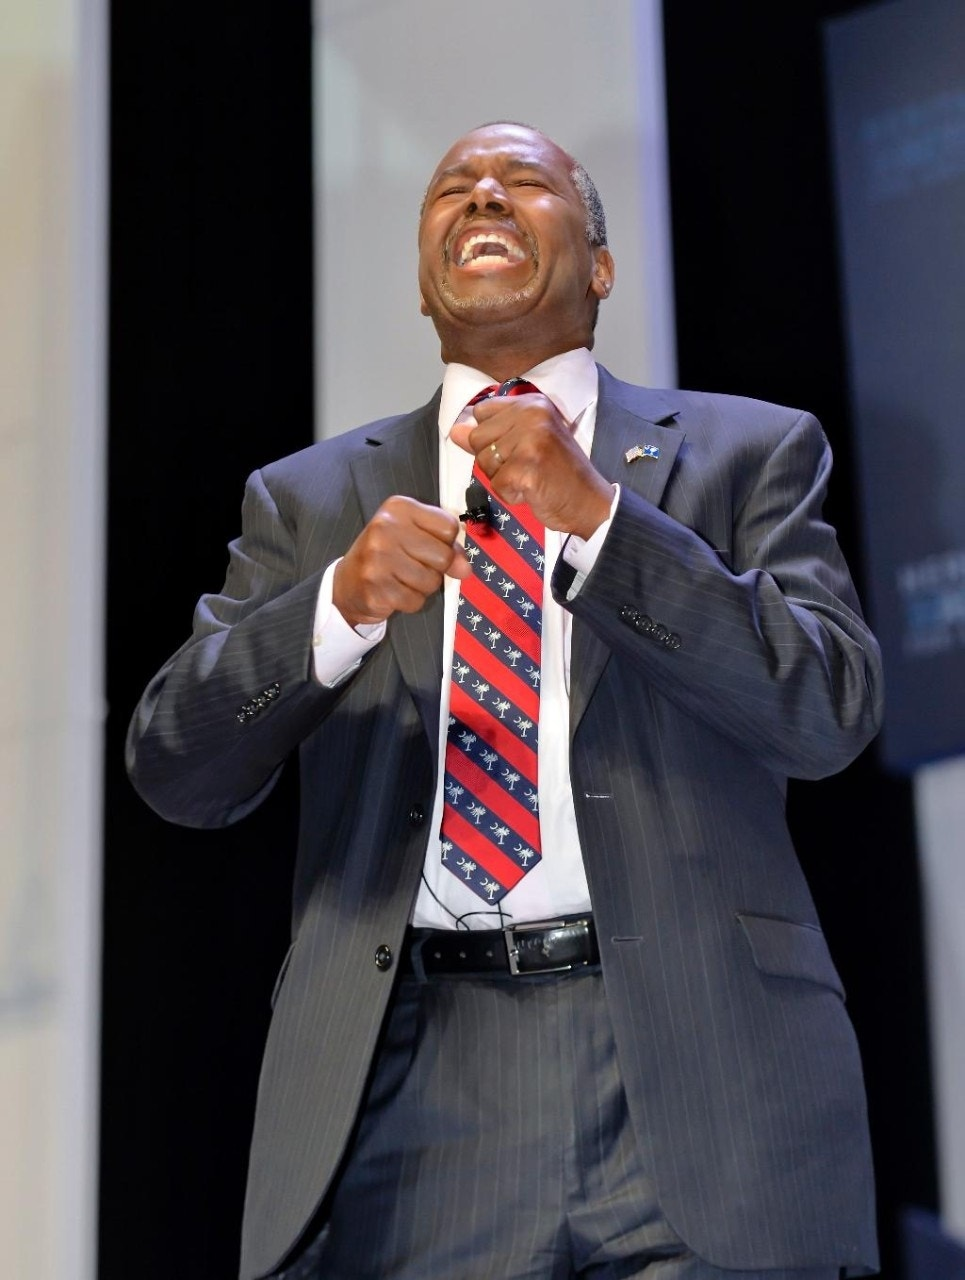 GOP candidate Carson: Islam inconsistent with Constitution; a Muslim shouldn't be president